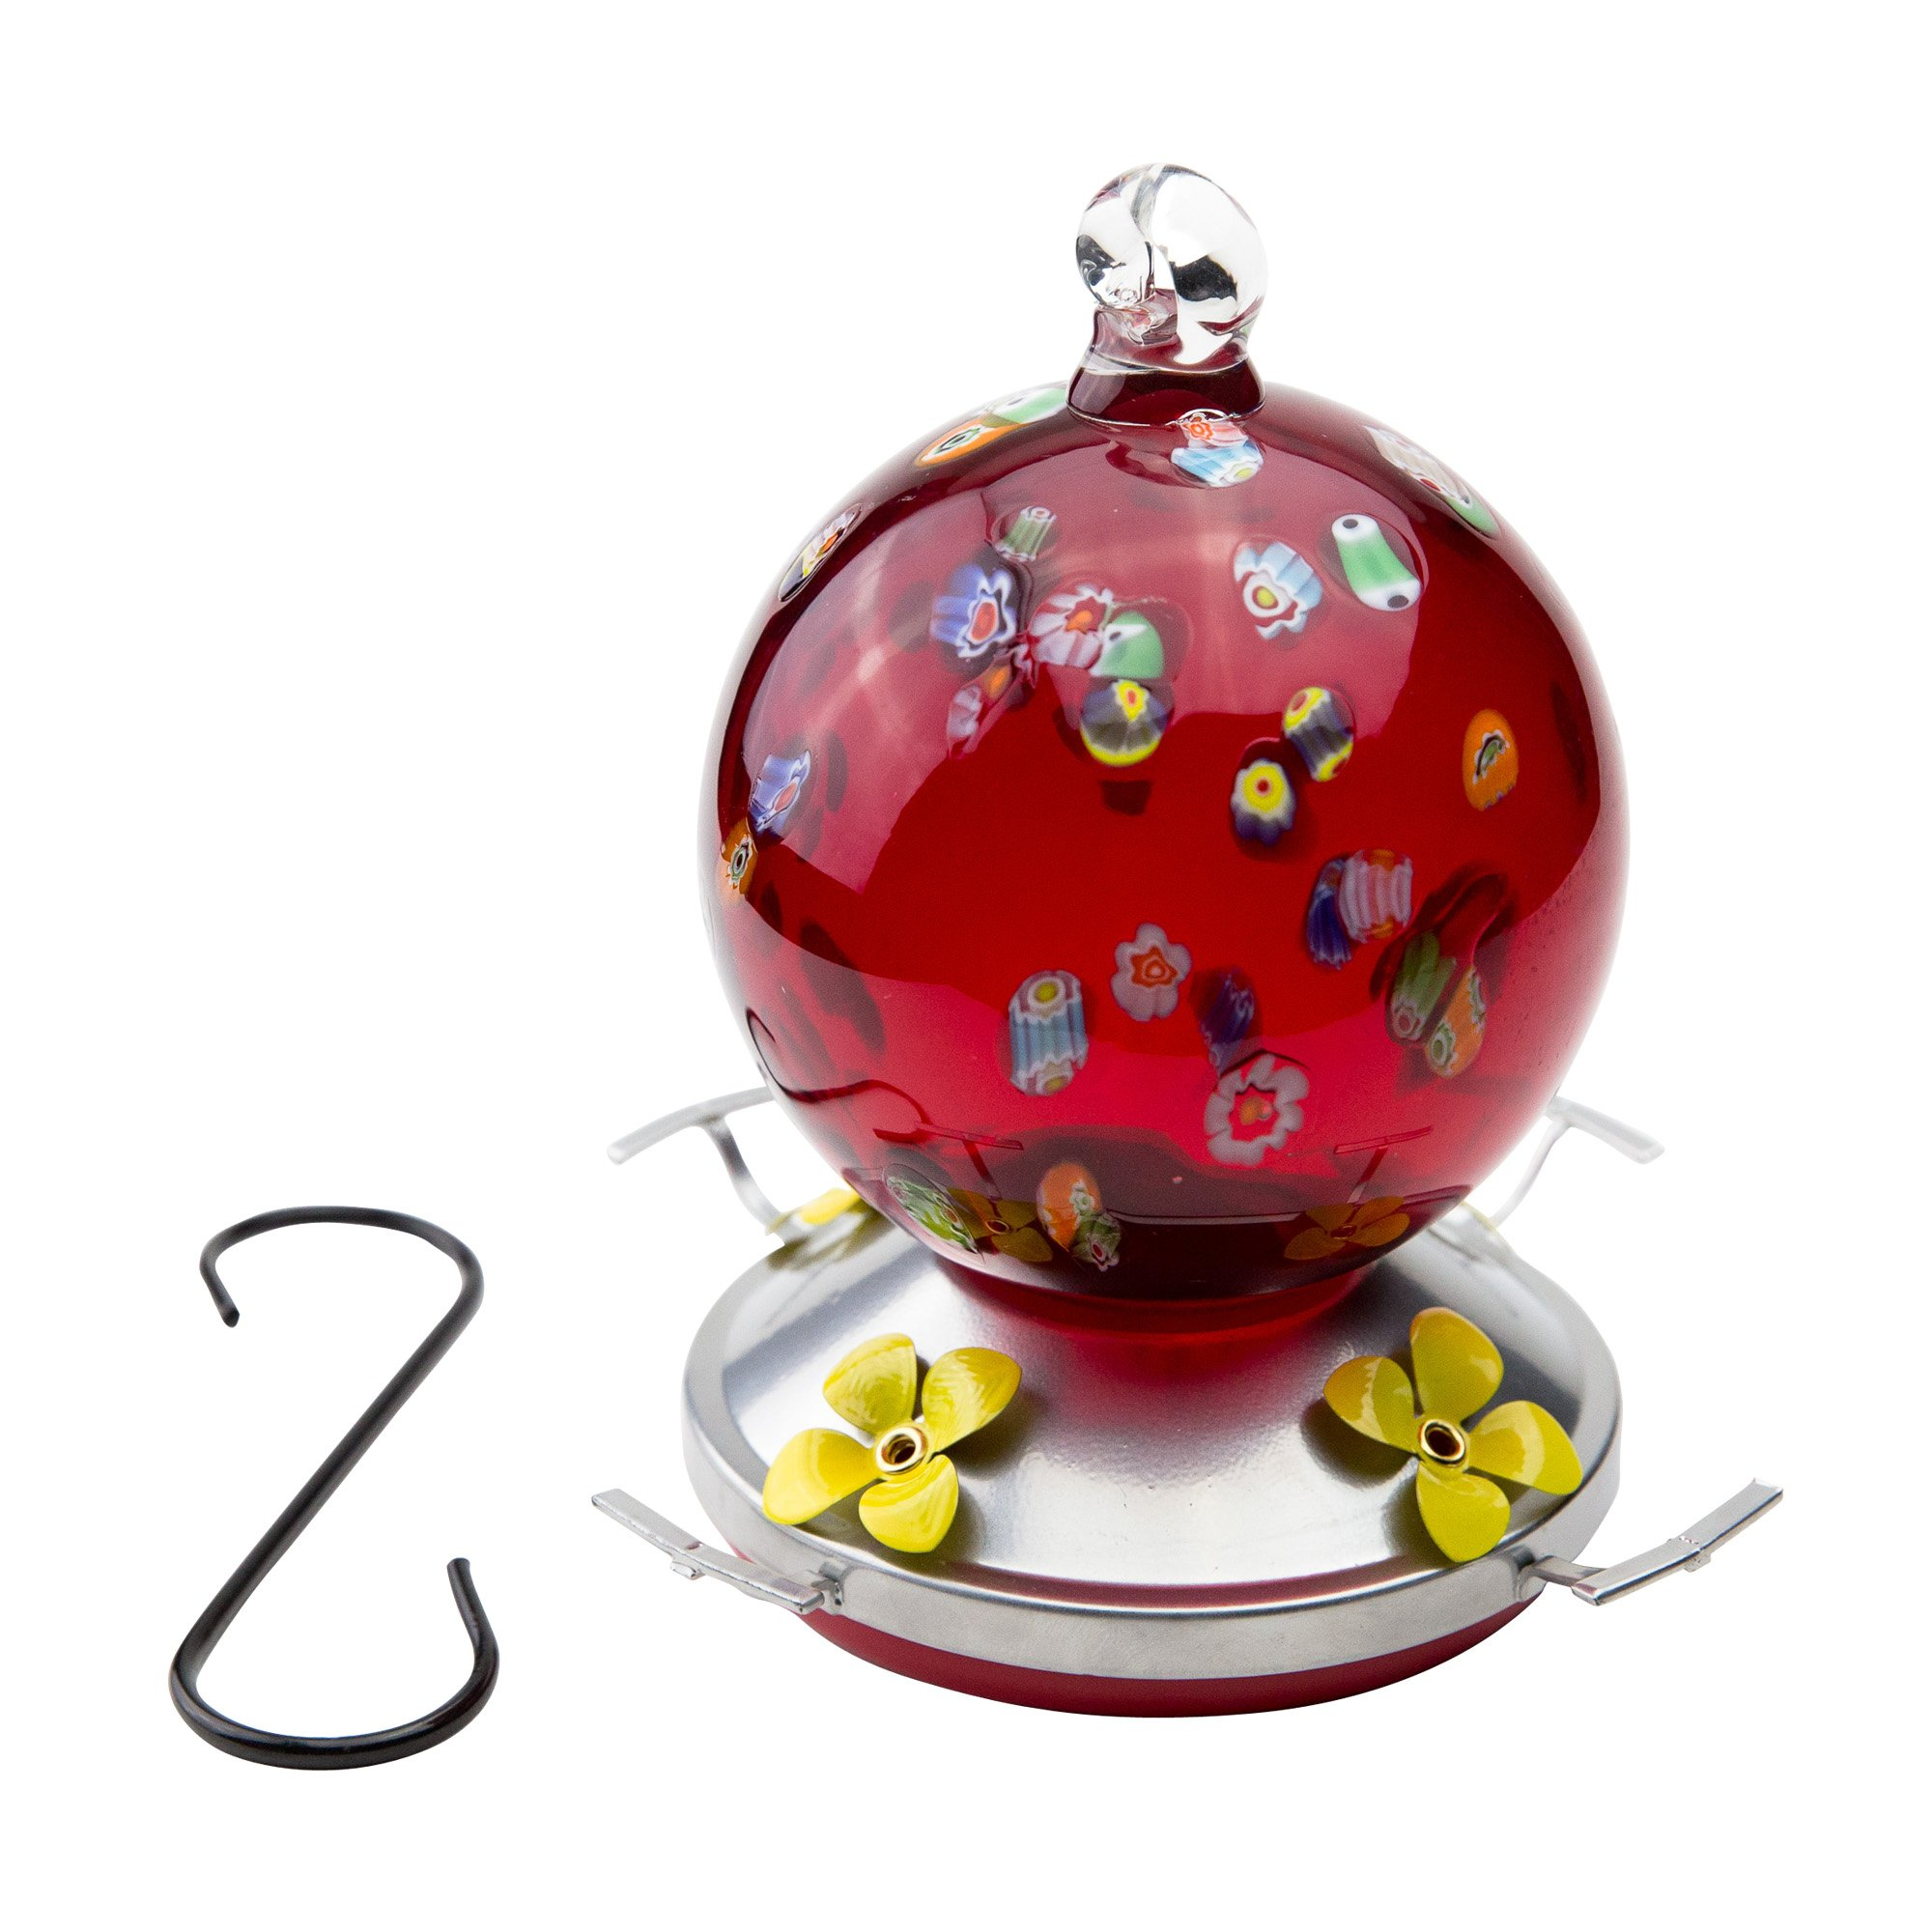 Best Home Products Hummingbird Feeder, Blown Glass, Cherry Cheer, 3 Cups